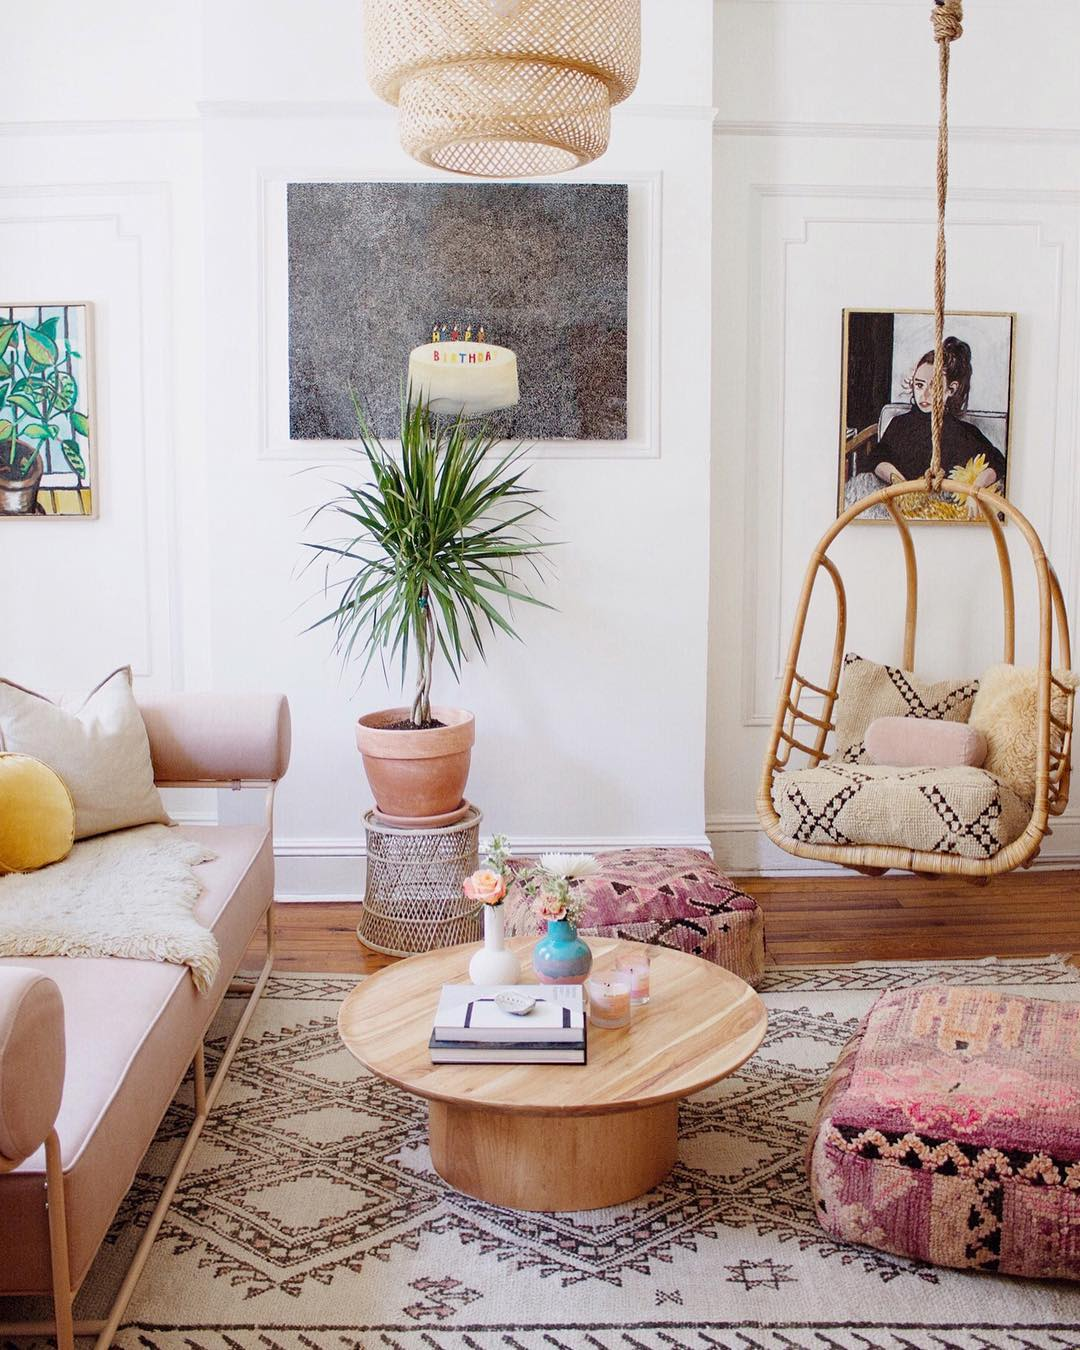 Living room with pink accents, beachy decor, and wicker swing. Boho Chic Pretty in Pink Apartment. #livingroom #boho #apartment #pink #tribal